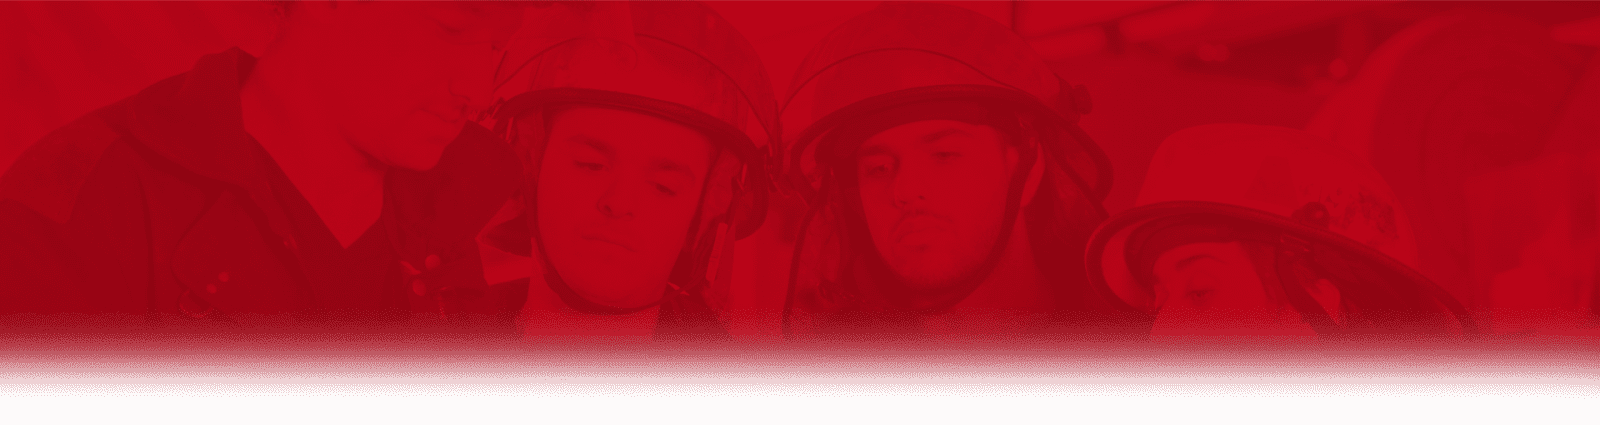 Fire Fighter Background Cover Photo